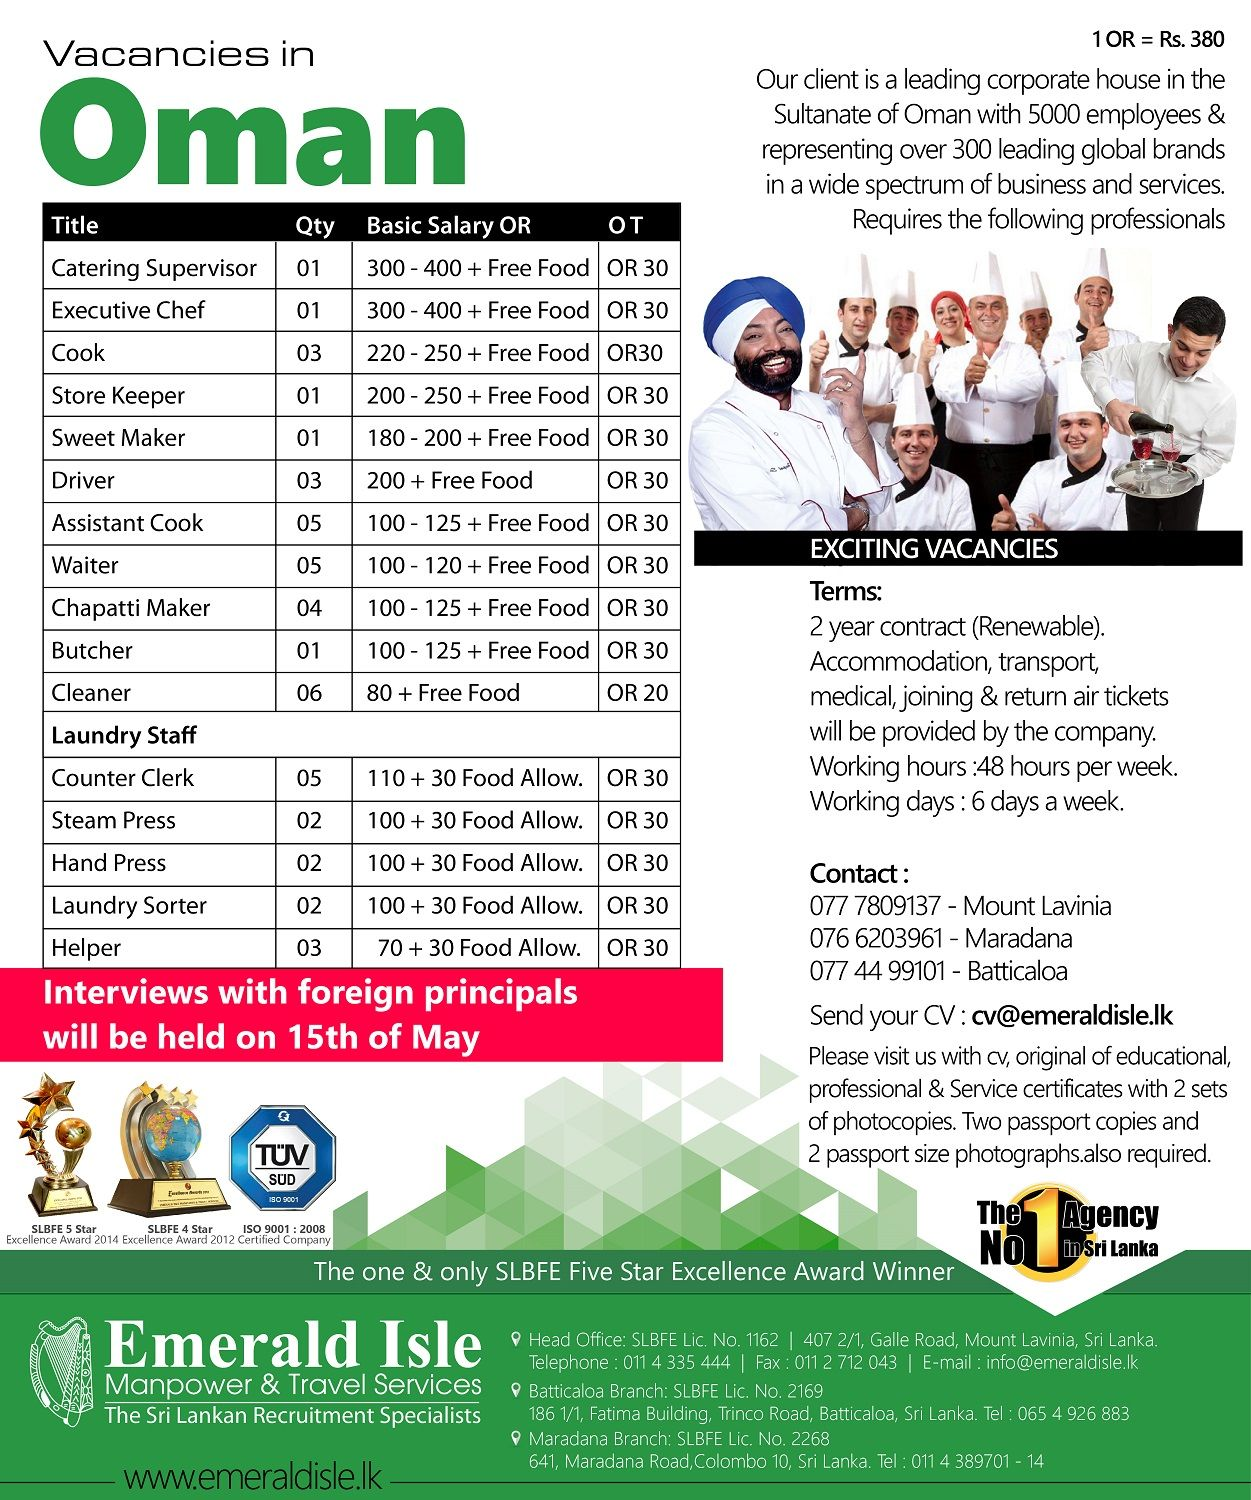 47 Best Foreign Vacancies Oman images in 2019 | Shopping, Emerald